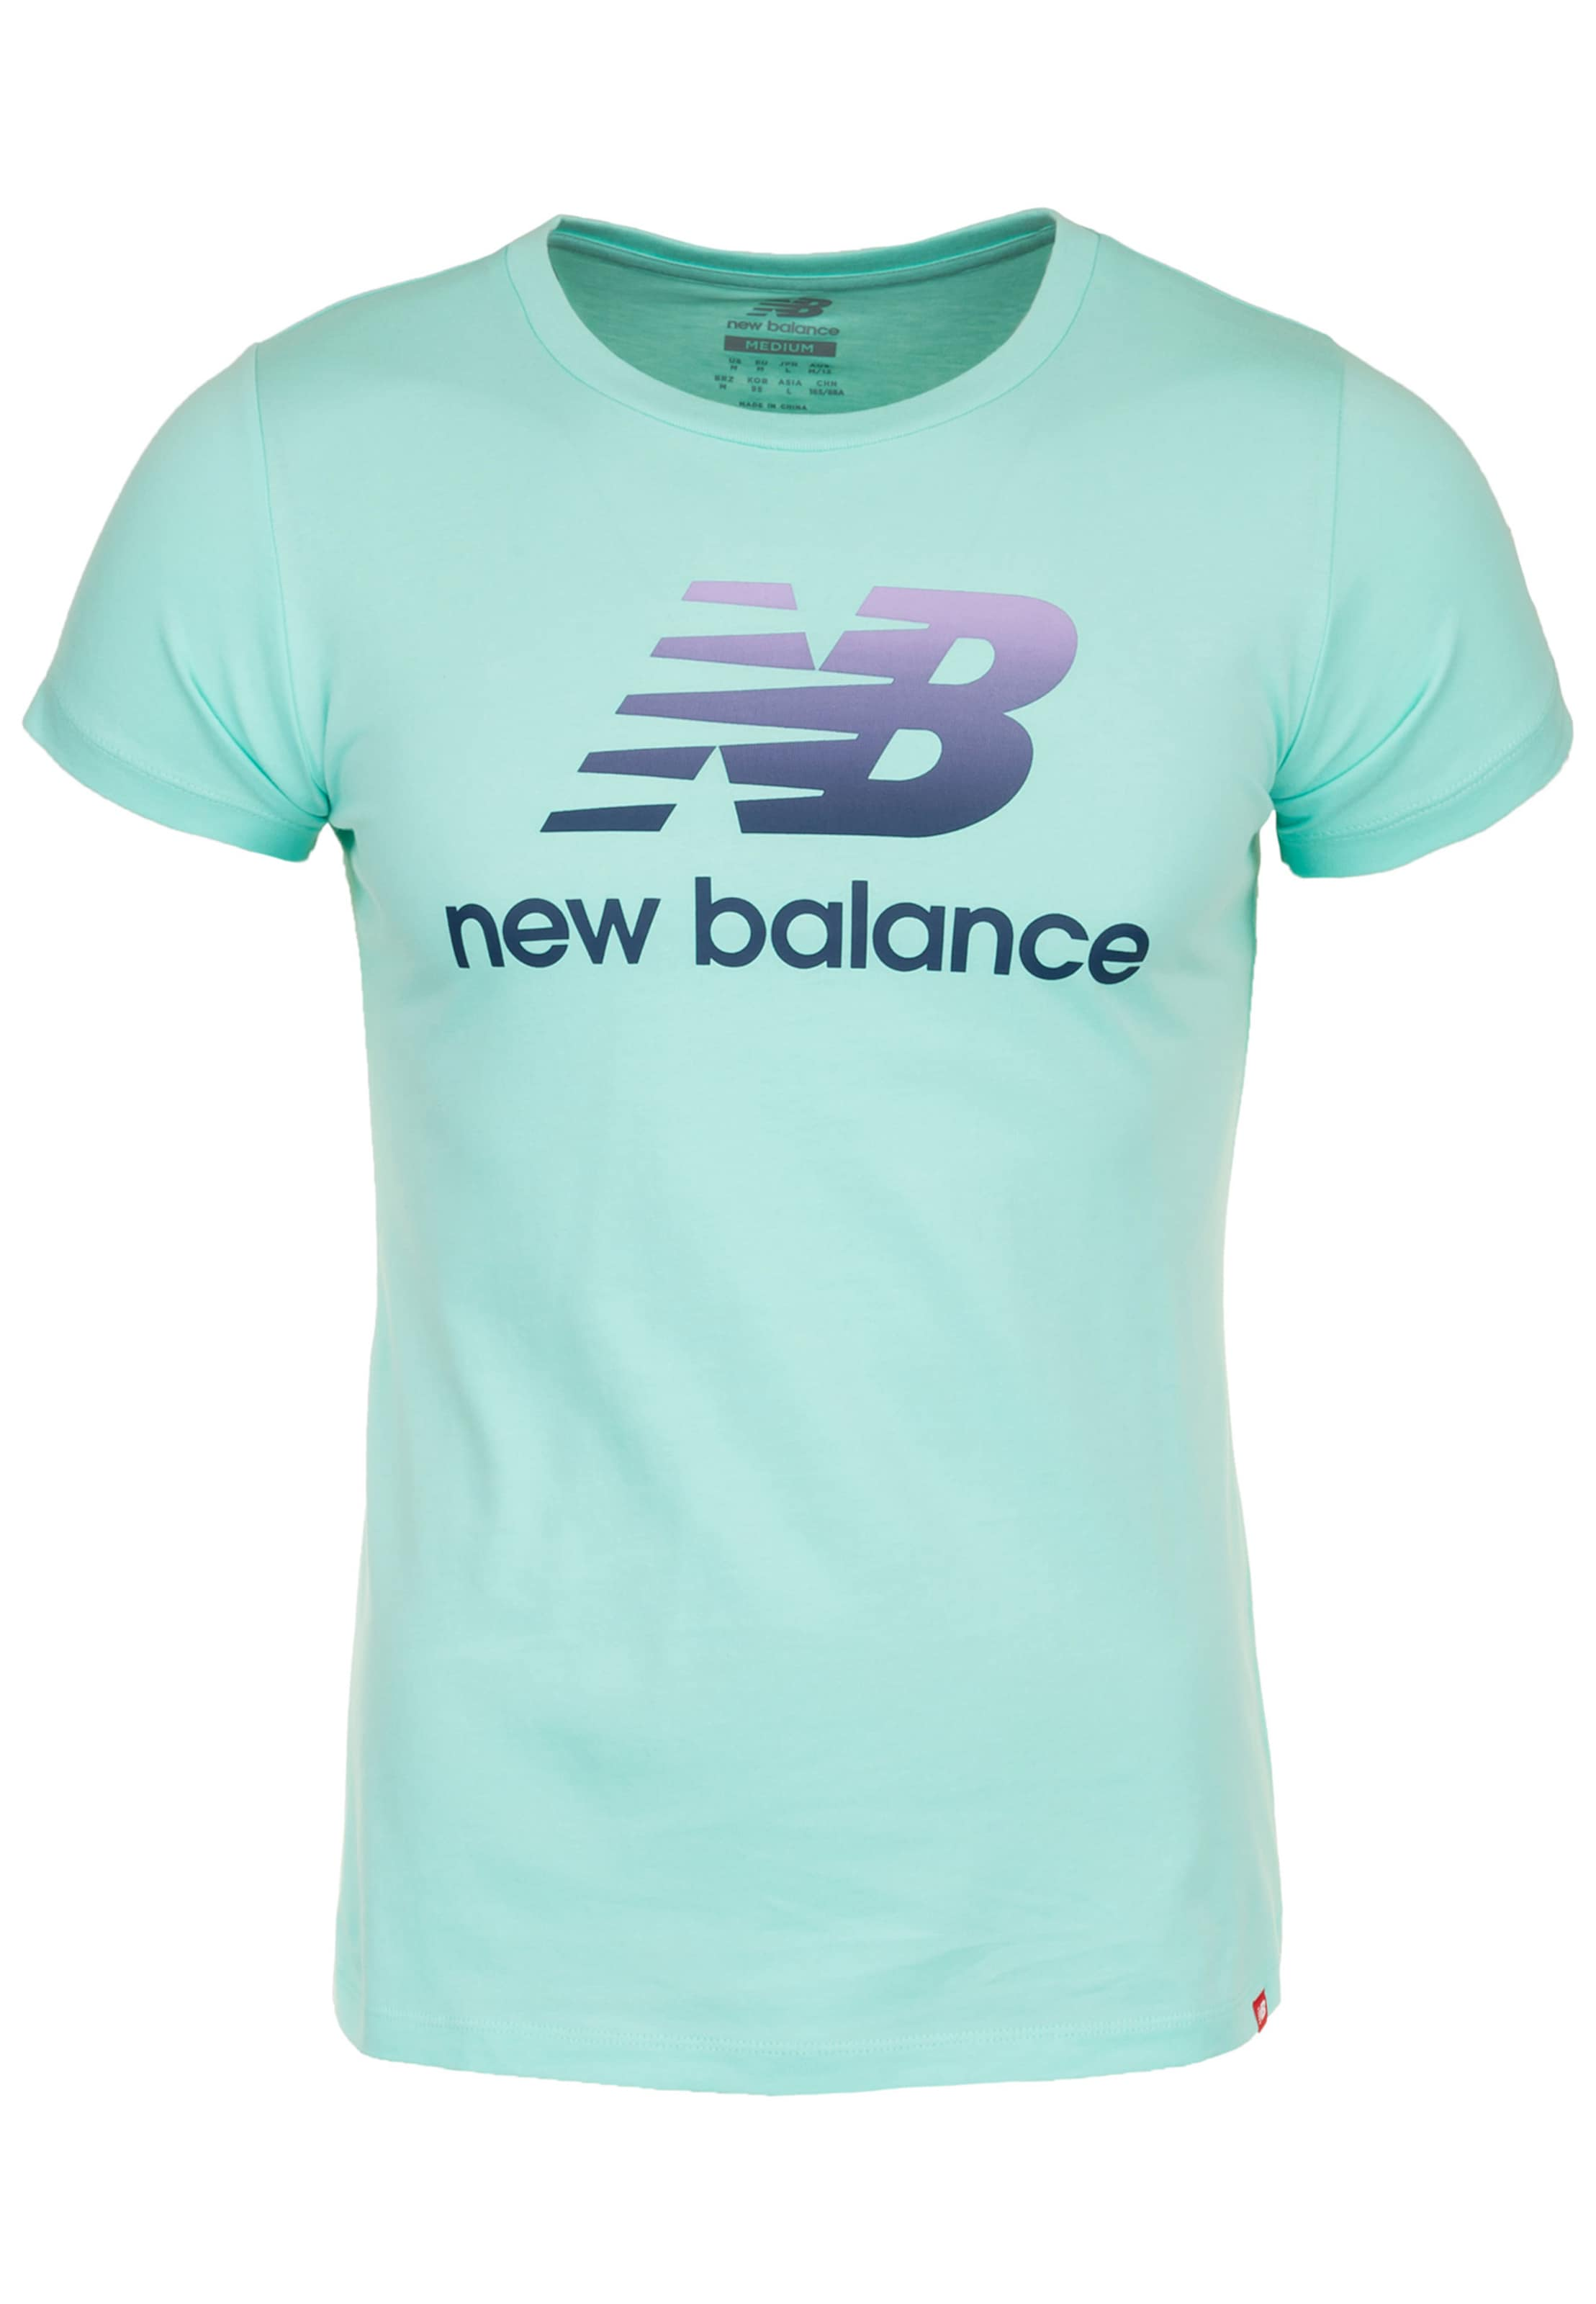 New In Balance Shirt Shirt Balance AquaMischfarben New Tc5lJF3uK1